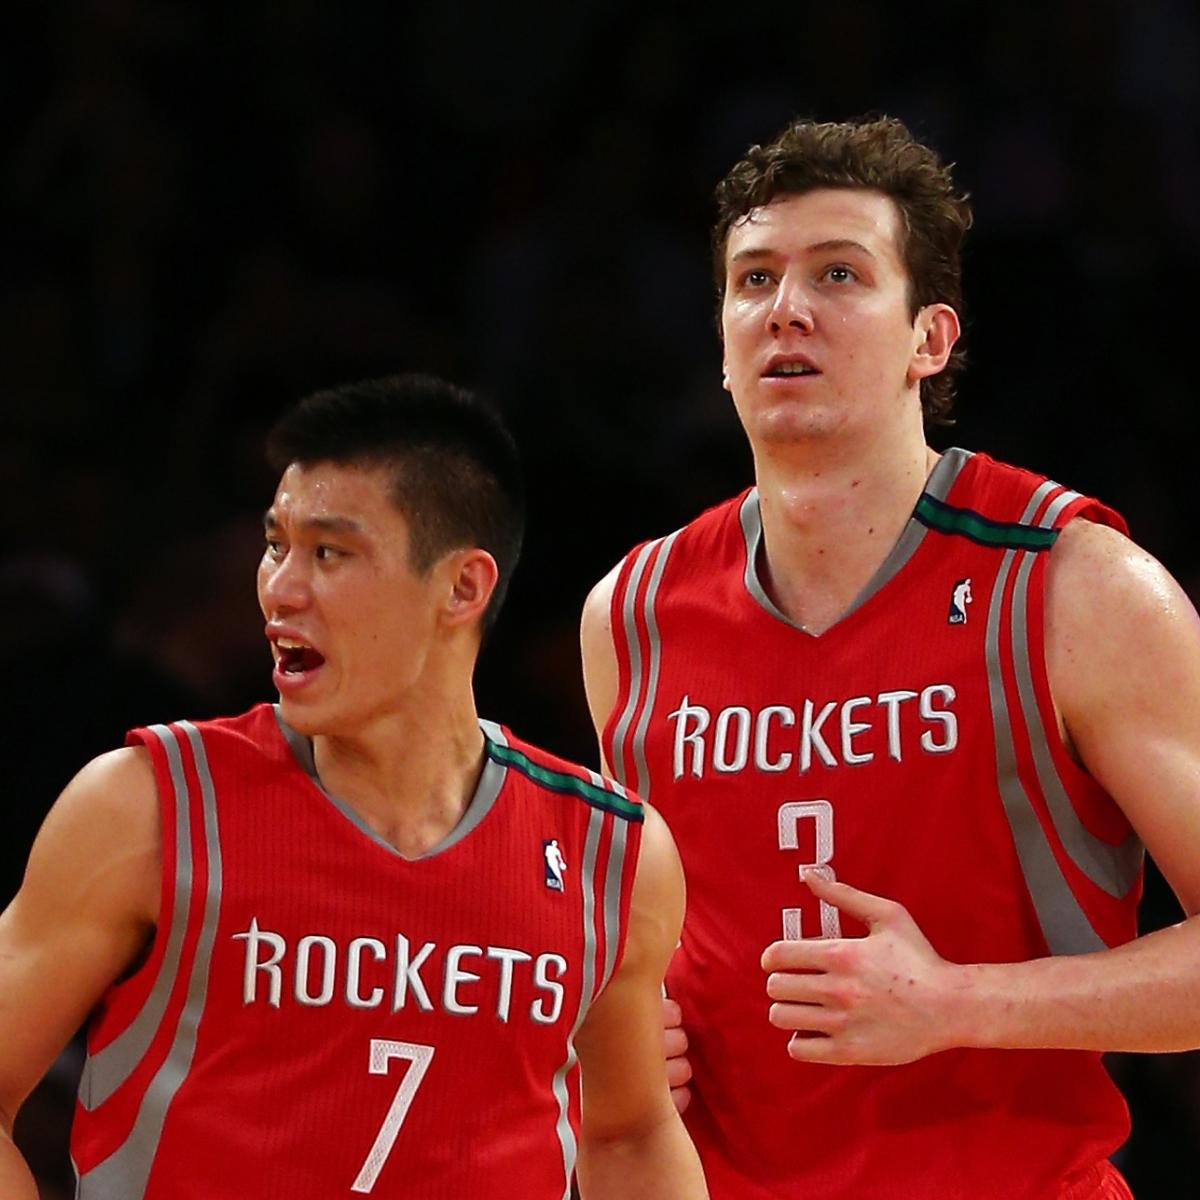 Houston Rockets Championship Roster: Potential Trades To Give Houston Rockets Title Boost